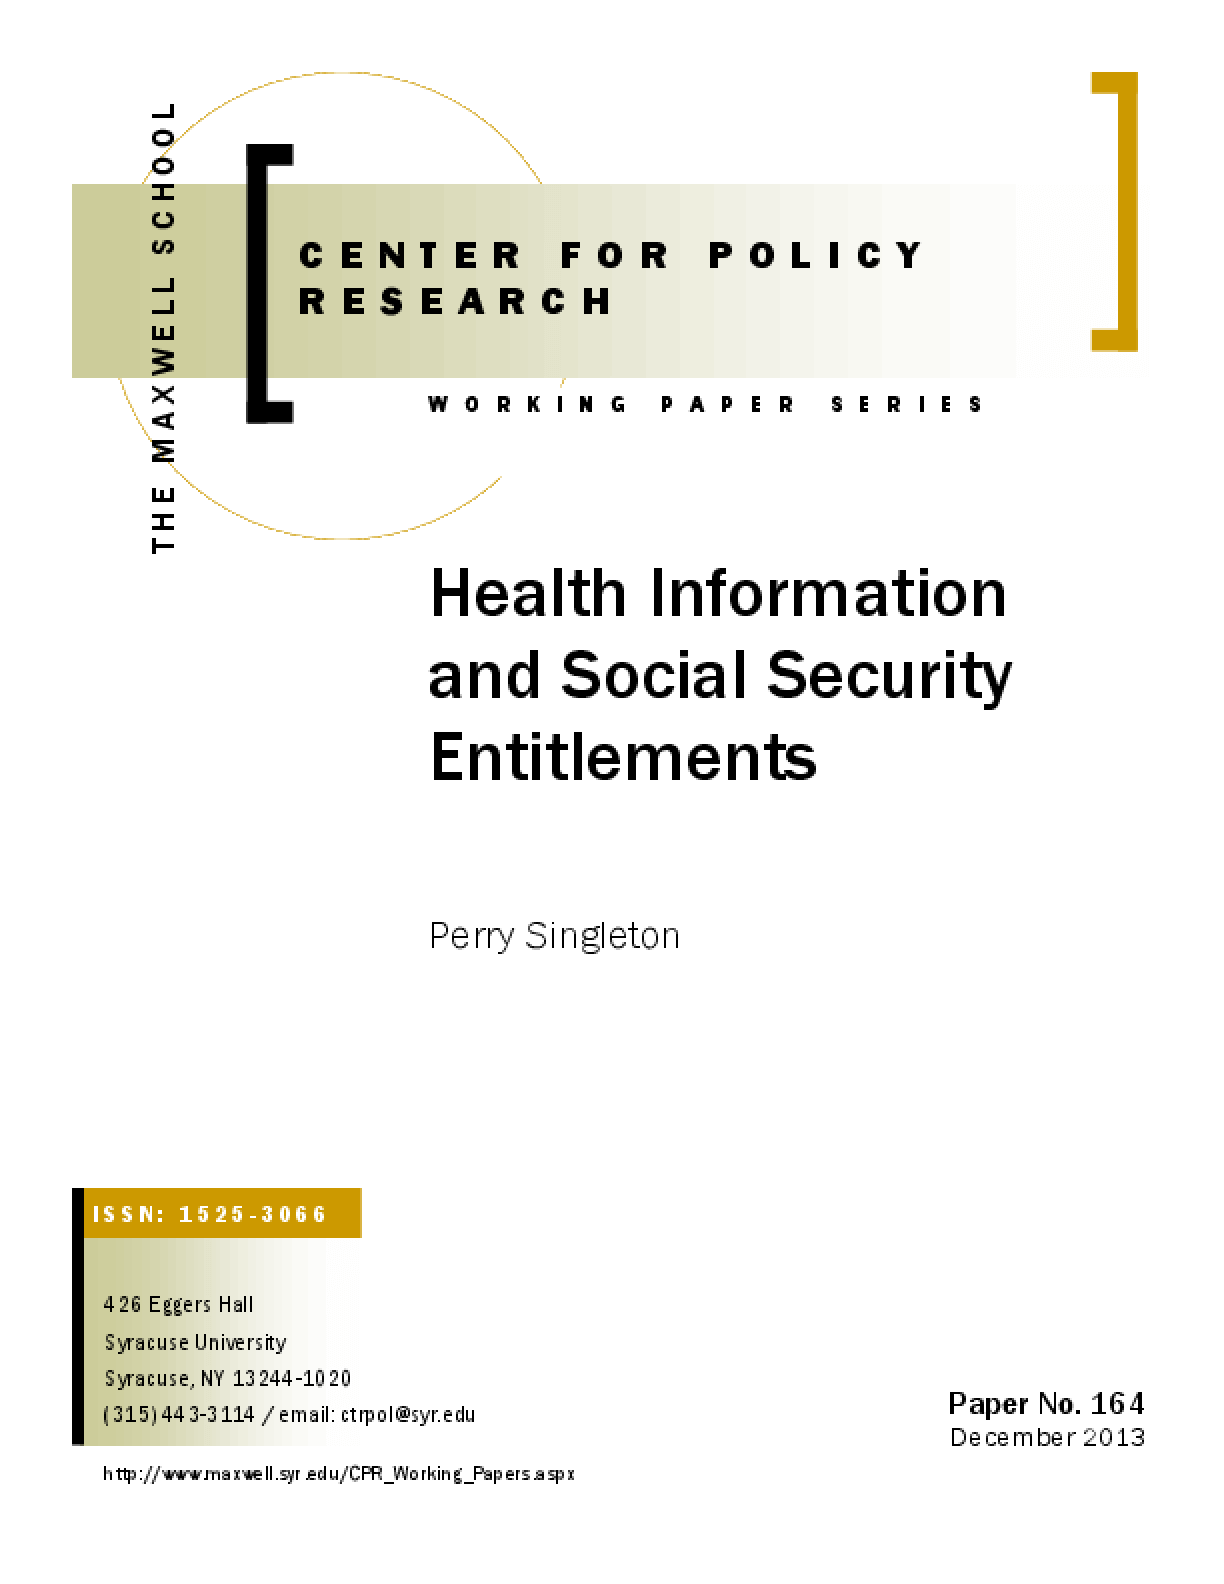 Health Information and Social Security Entitlements